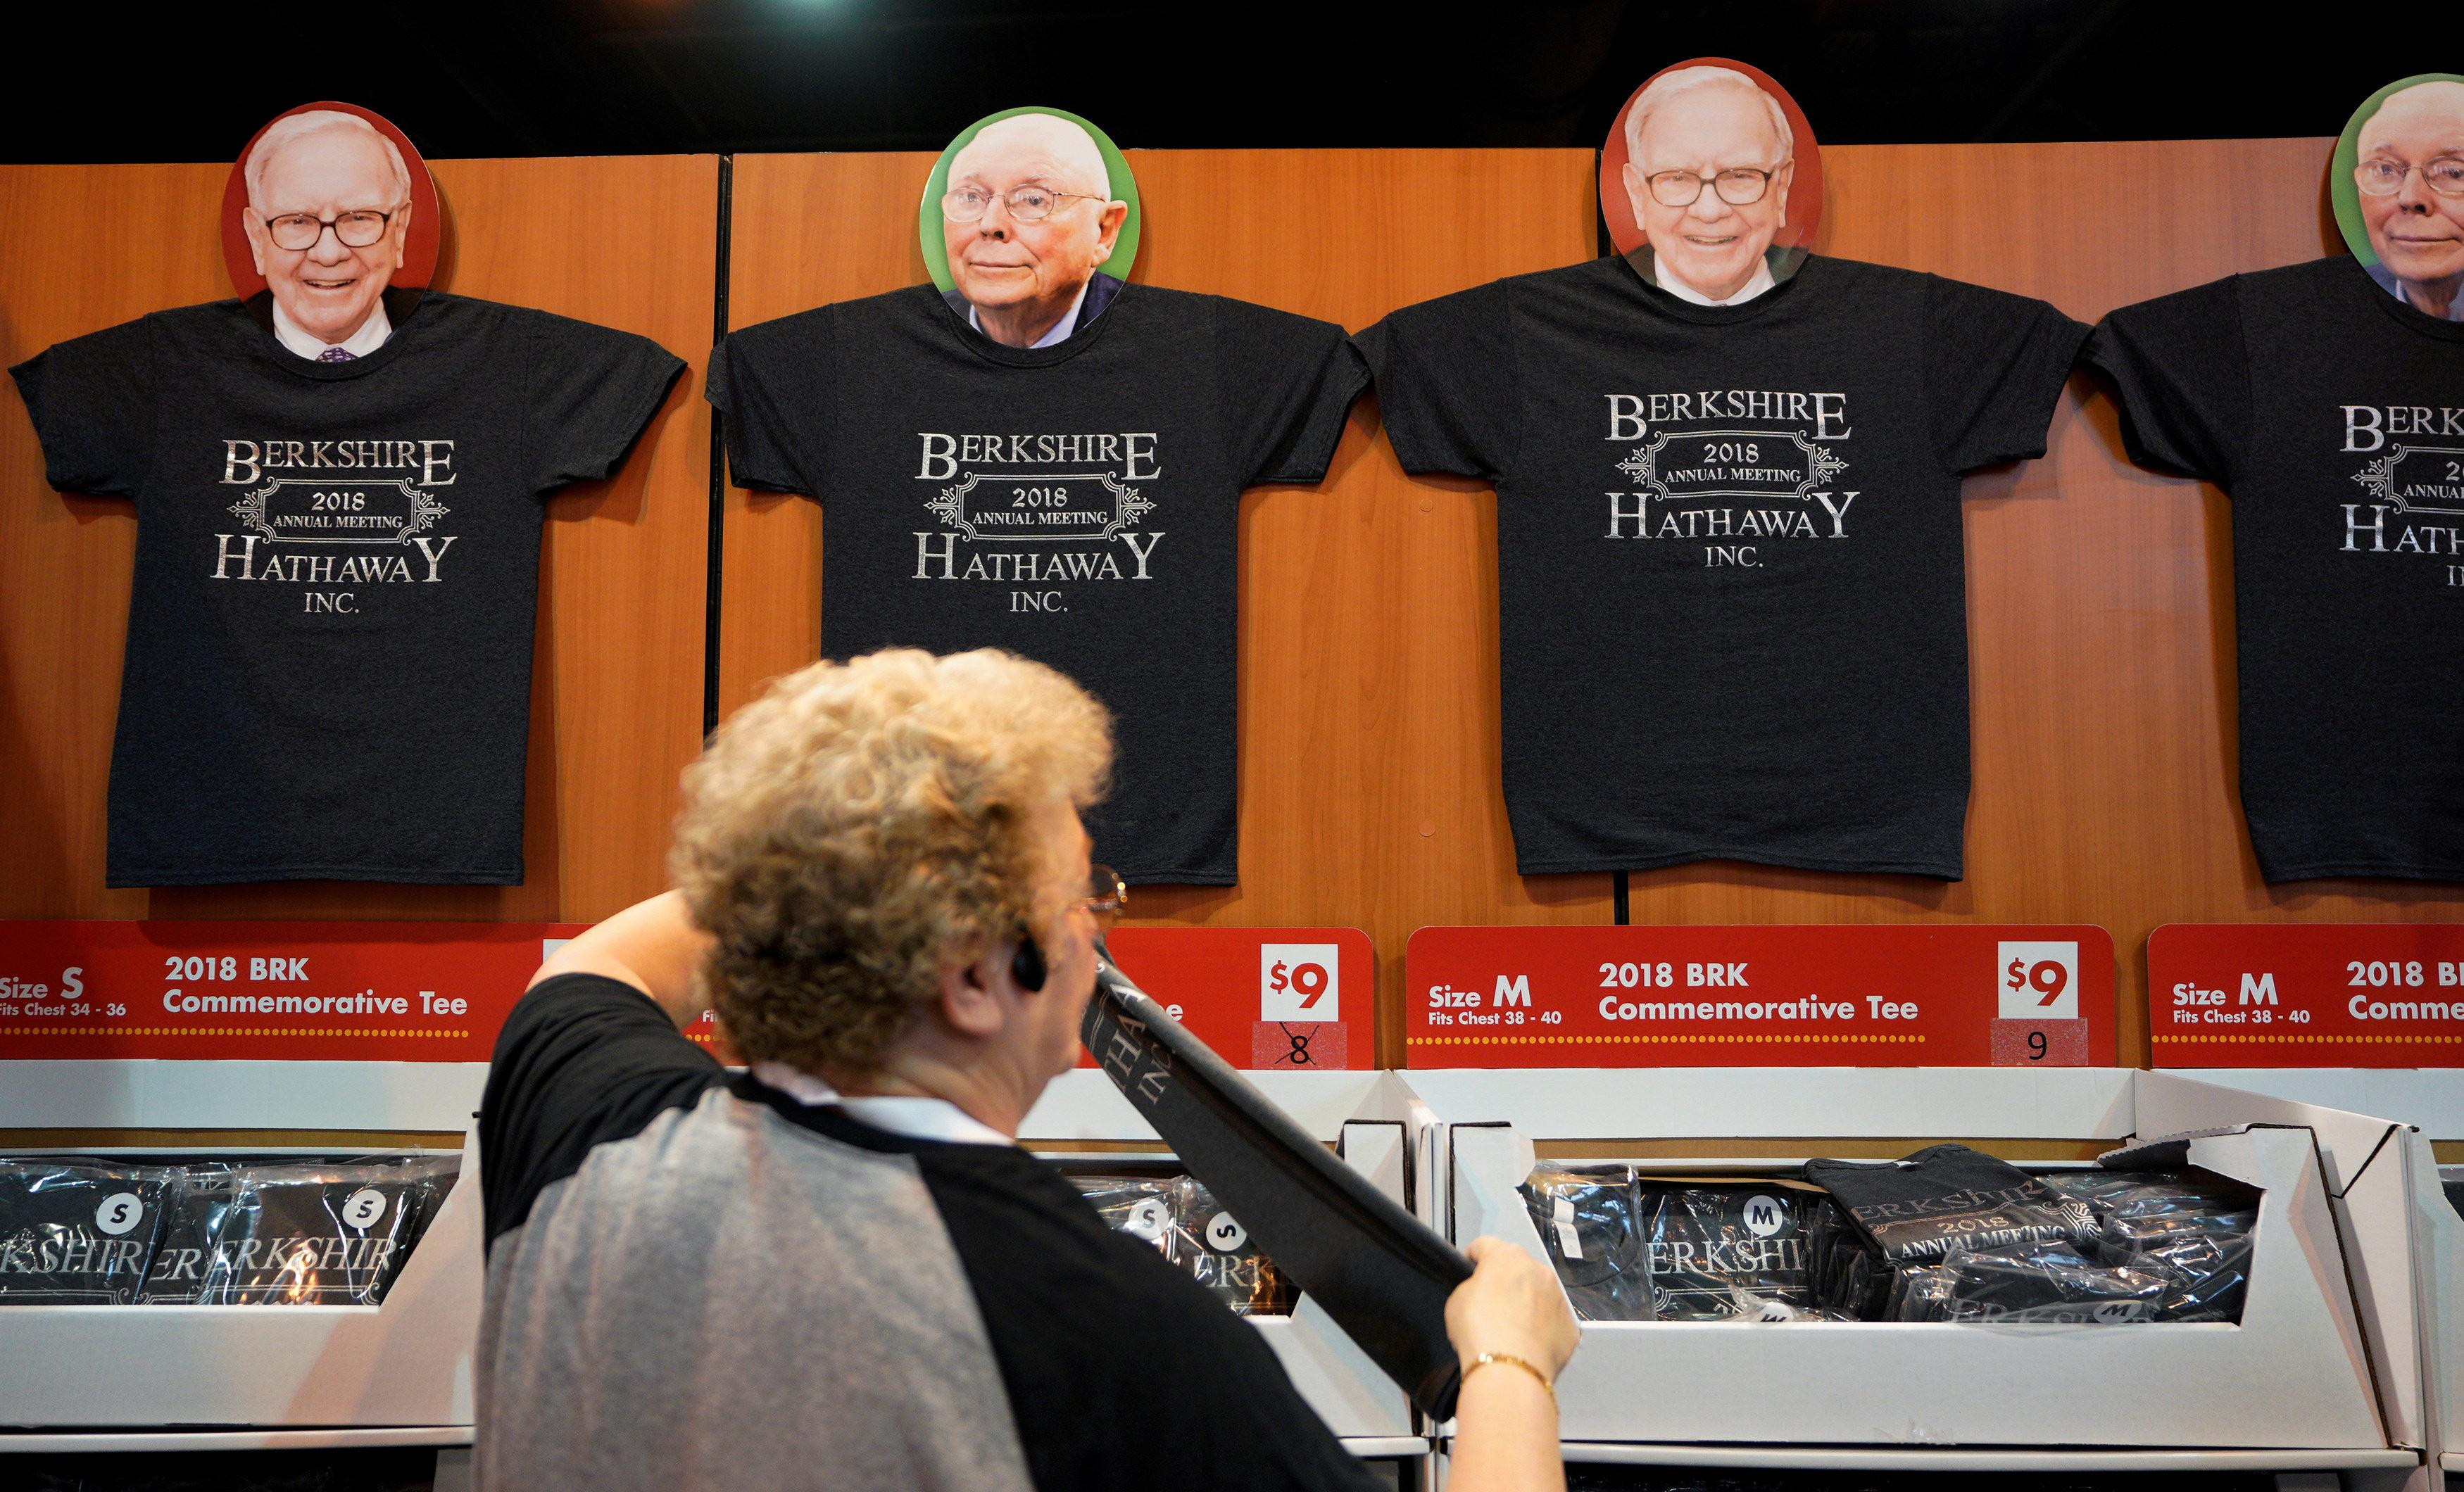 A worker arranges a display of t-shirts with images of Warren Buffett and Charlie Munger at the Berkshire Hathaway Inc annual meeting, the largest in corporate America, in its hometown of Omaha, Nebraska, U.S., May 4, 2018. Rick Wilking